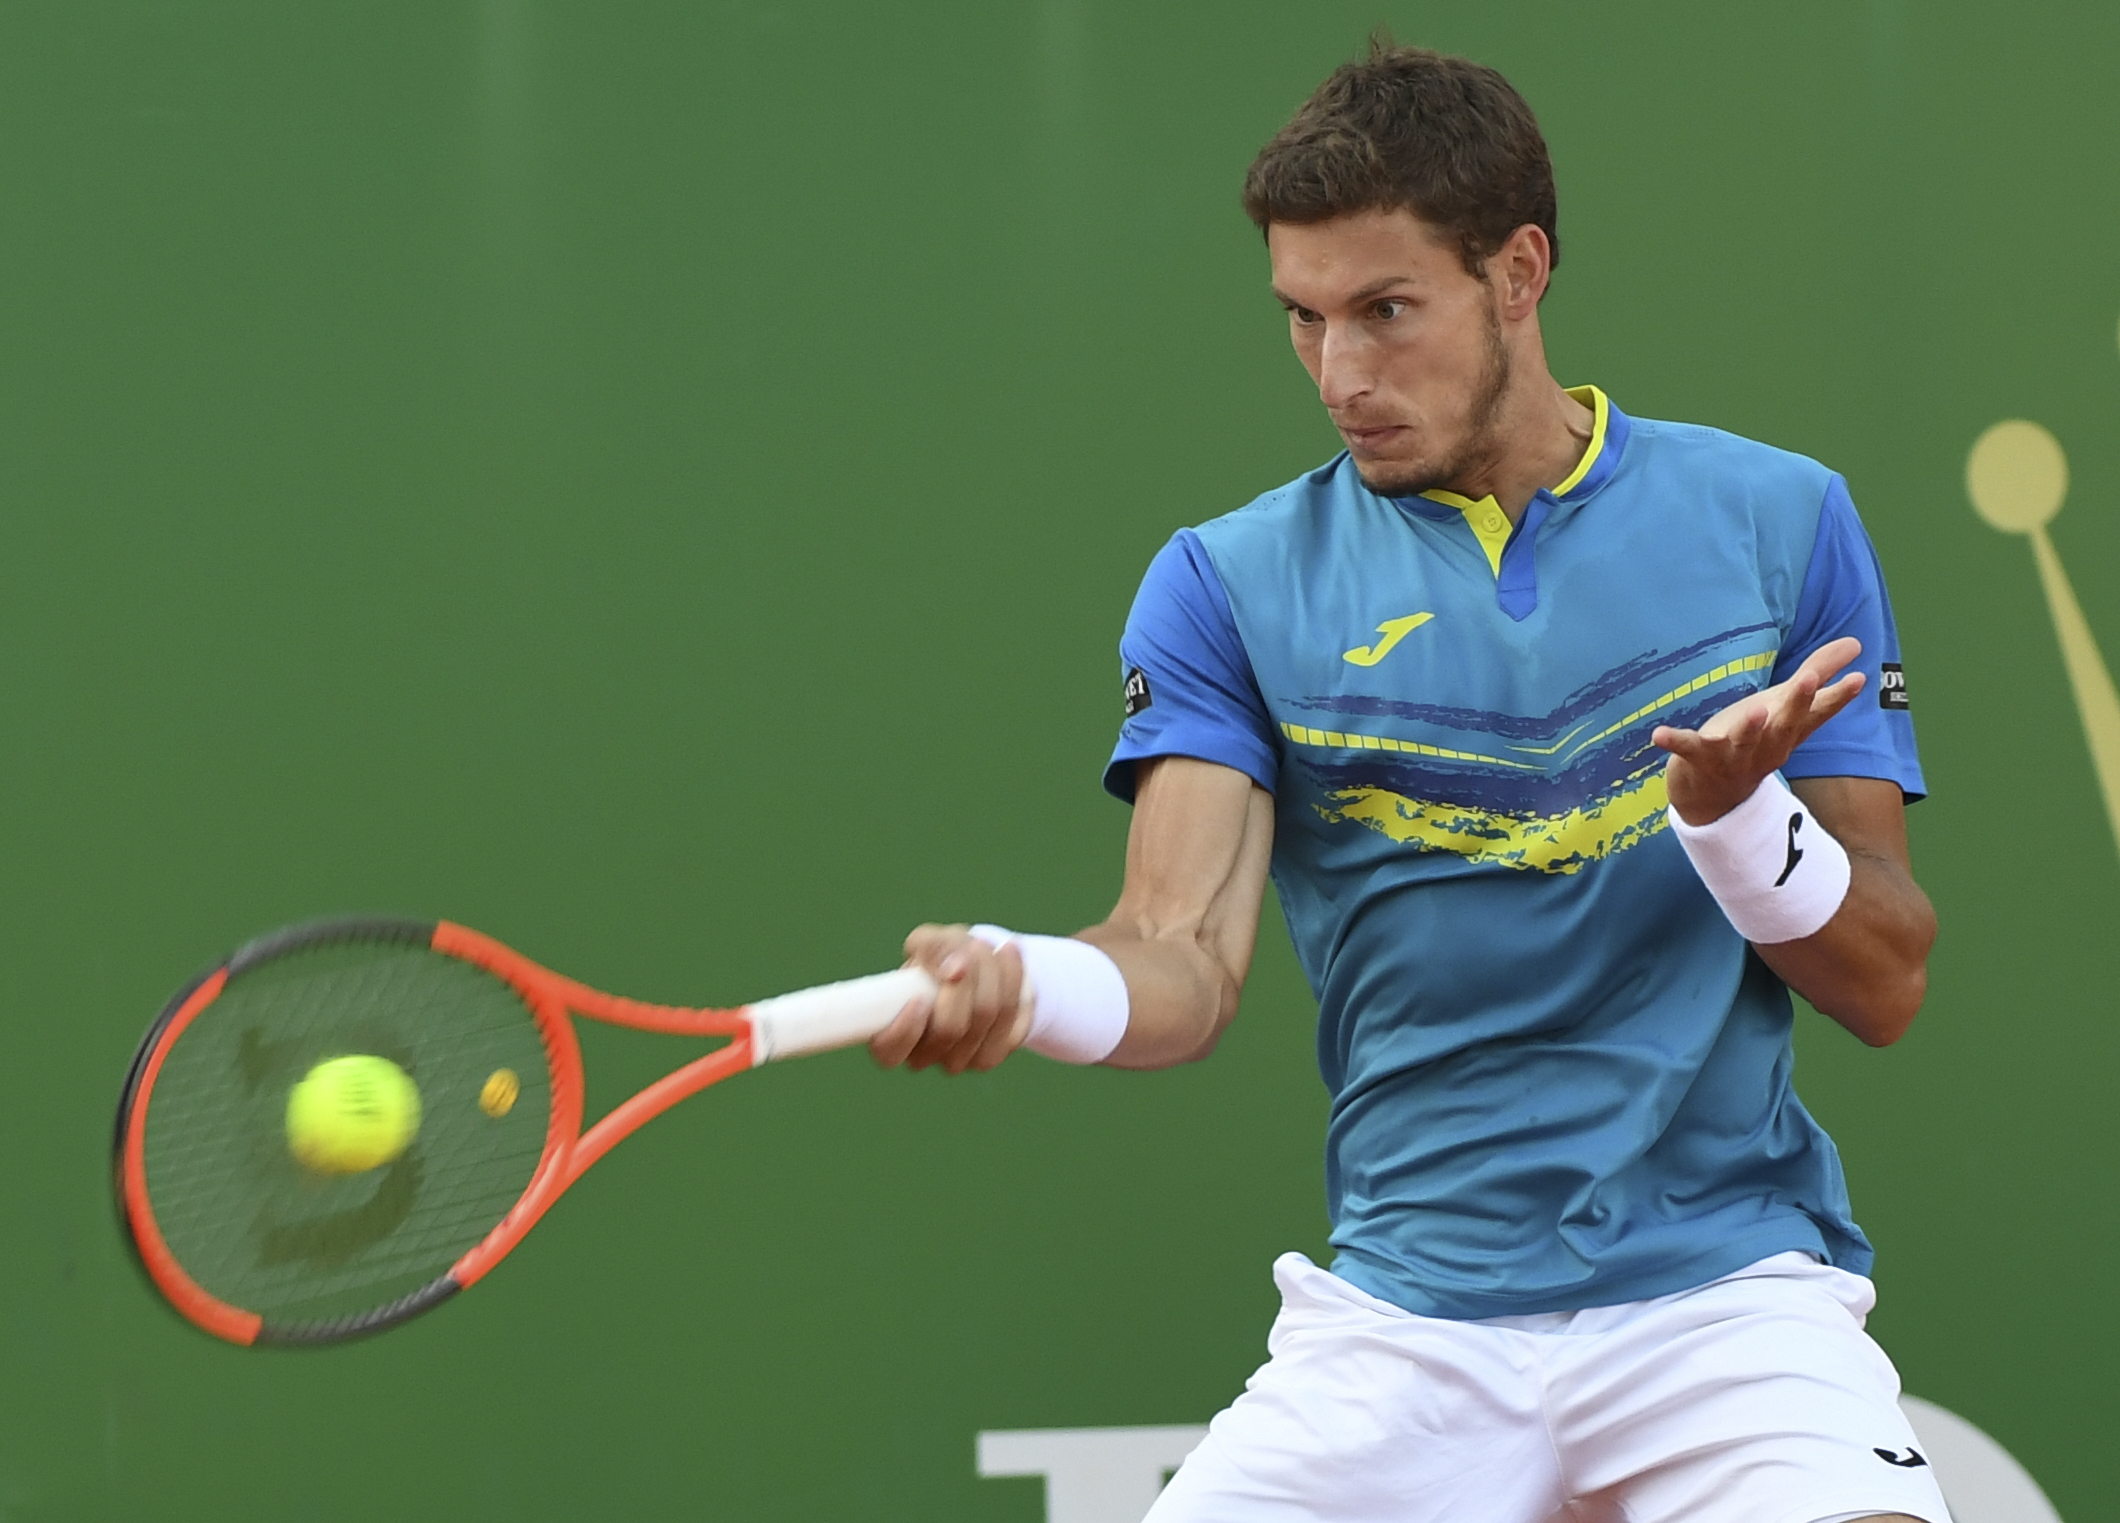 Spain's Pablo Carreno Busta returns the ball to Serbia's Novak Djokovic during the Monte-Carlo ATP Masters Series tennis tournament on April 20, 2017 in Monaco. / AFP PHOTO / Yann COATSALIOU (Photo credit should read YANN COATSALIOU/AFP/Getty Images)